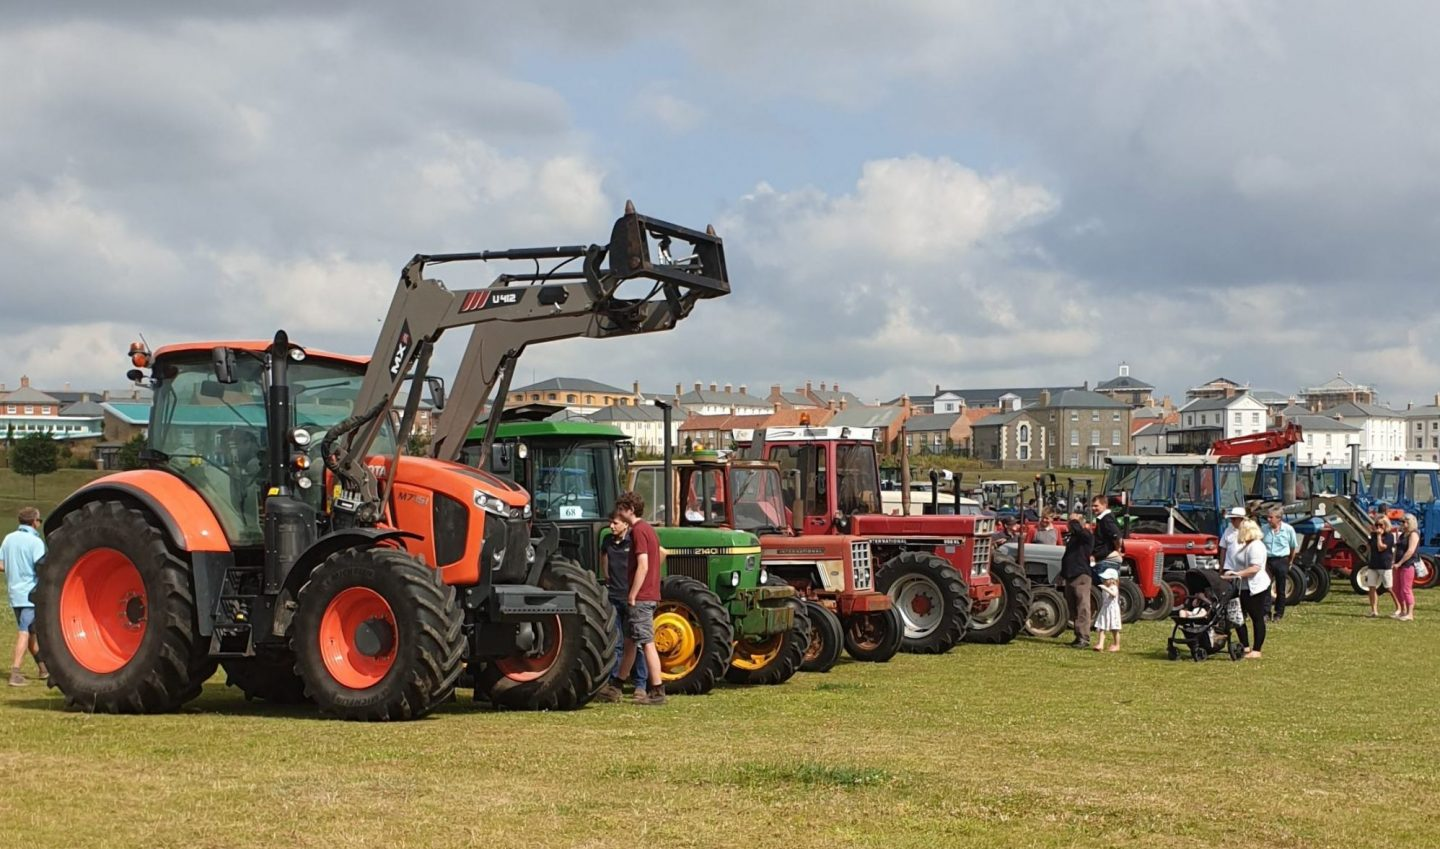 Tractor Line Up, The Great Field, Poundbury